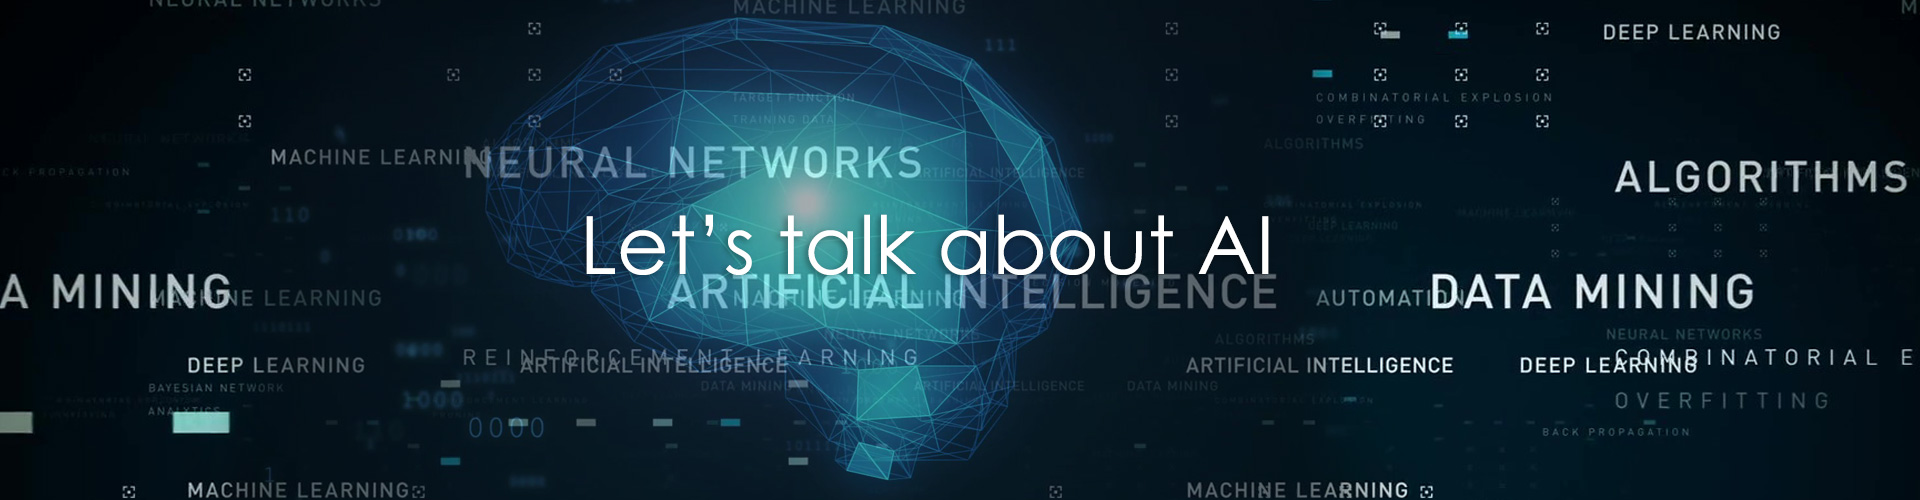 20180316_lets-talk-about-AI